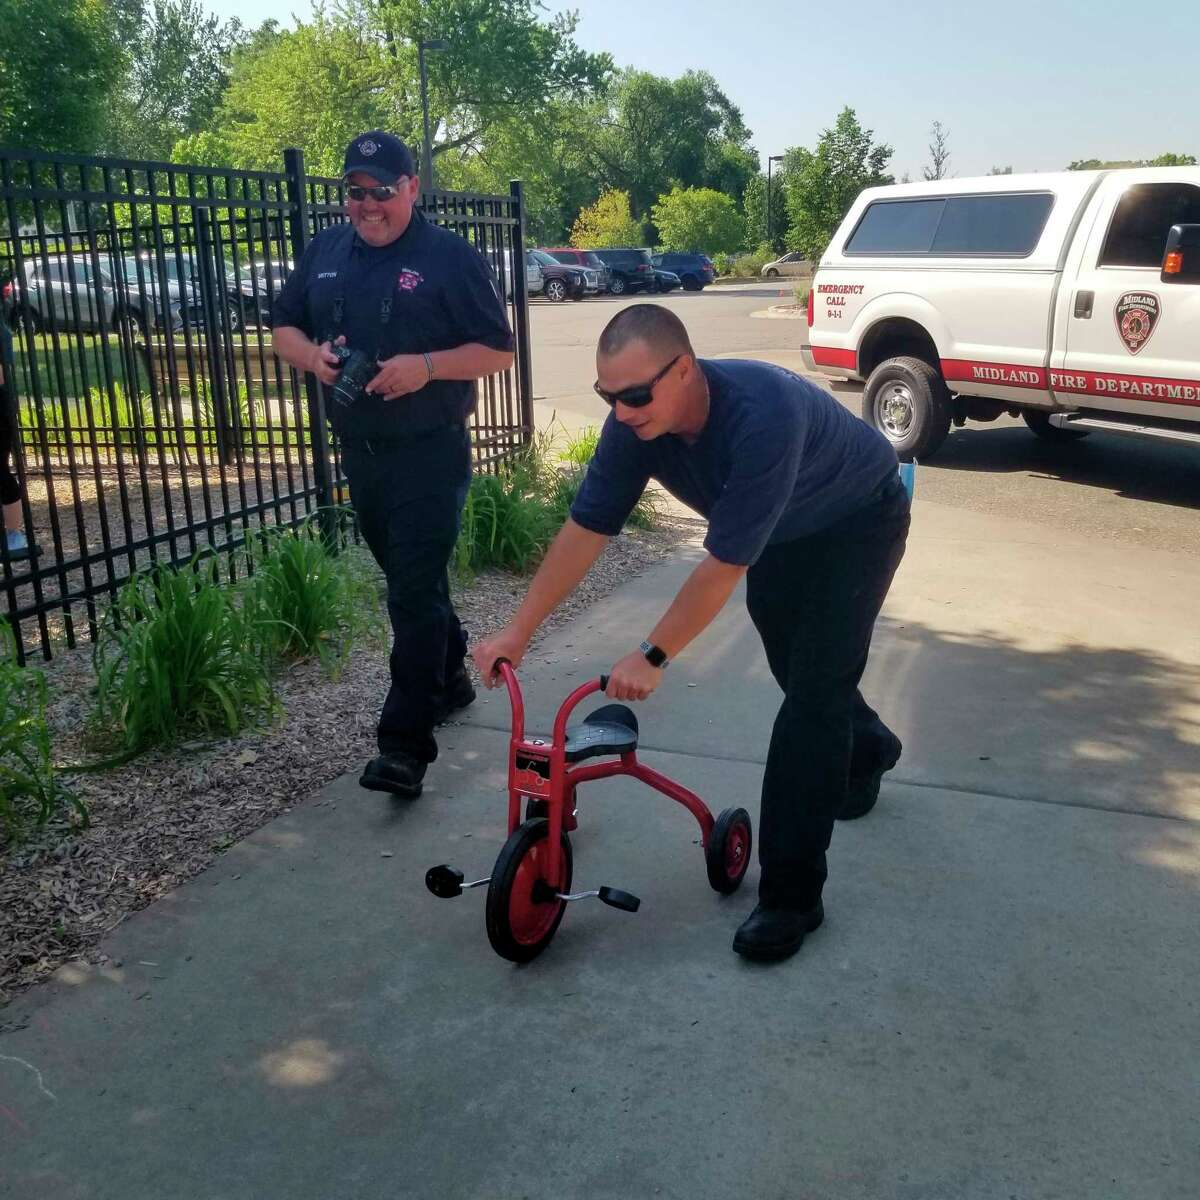 The Midland Firefighters Youth Foundation provided eight new tricycles to the Community Center for its Early Care and Education program. (Photo provided)